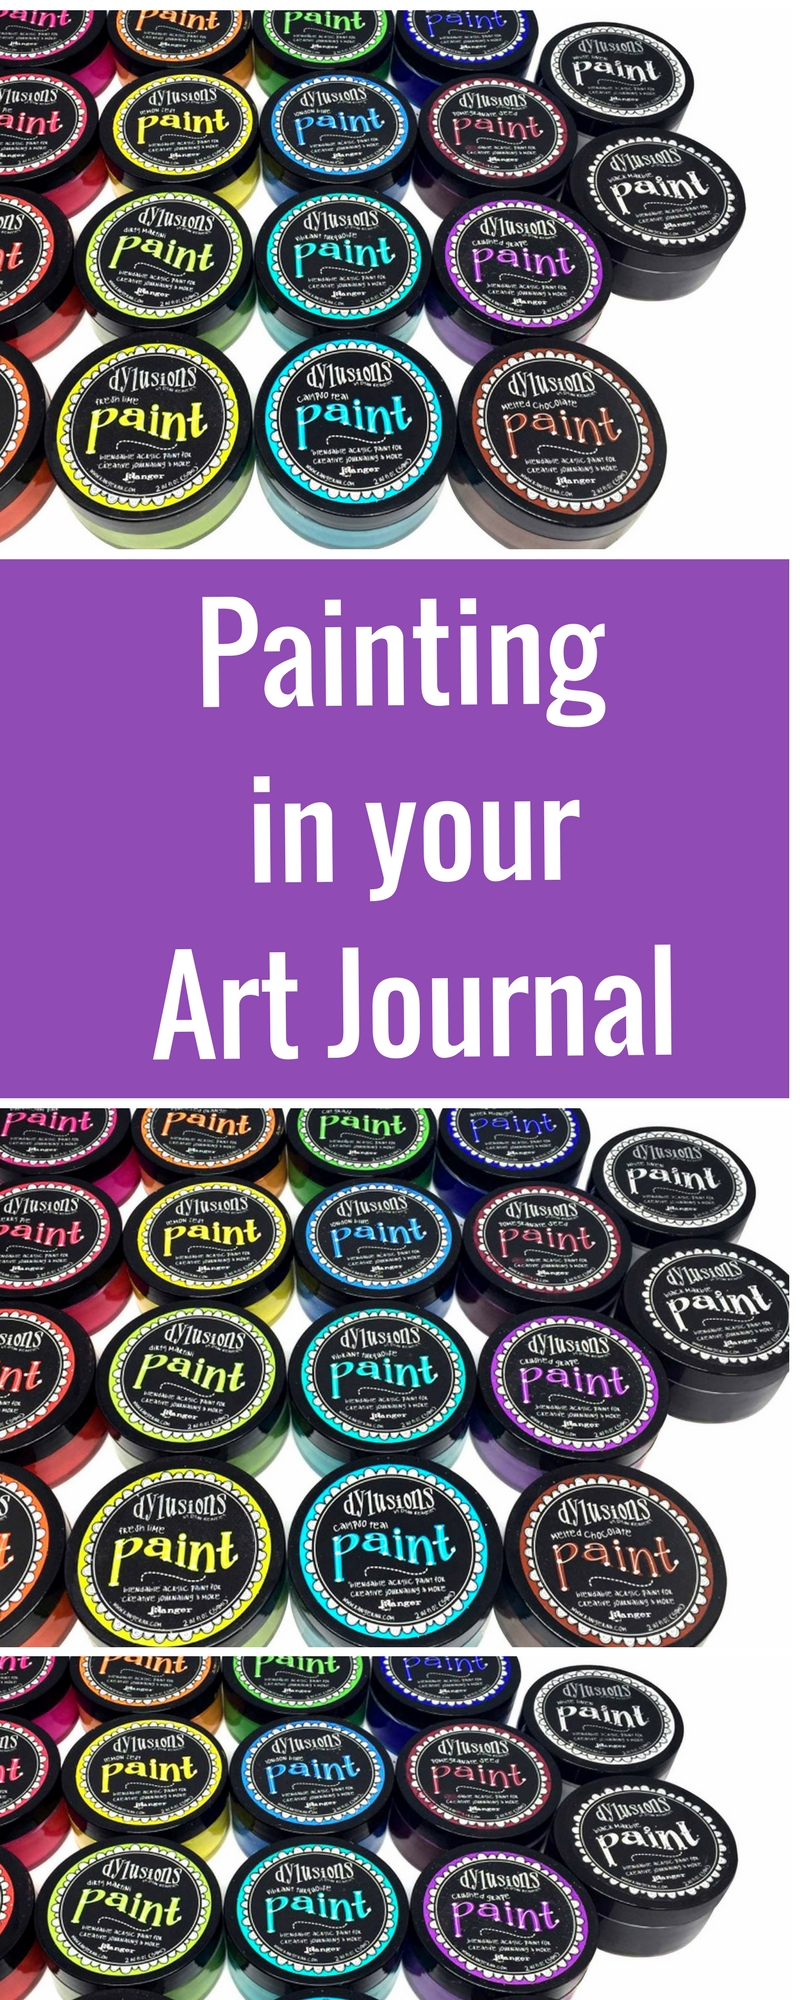 Art Journaling | Featuring Ranger Dylusions Paint | Creative Scrapbooker Magazine